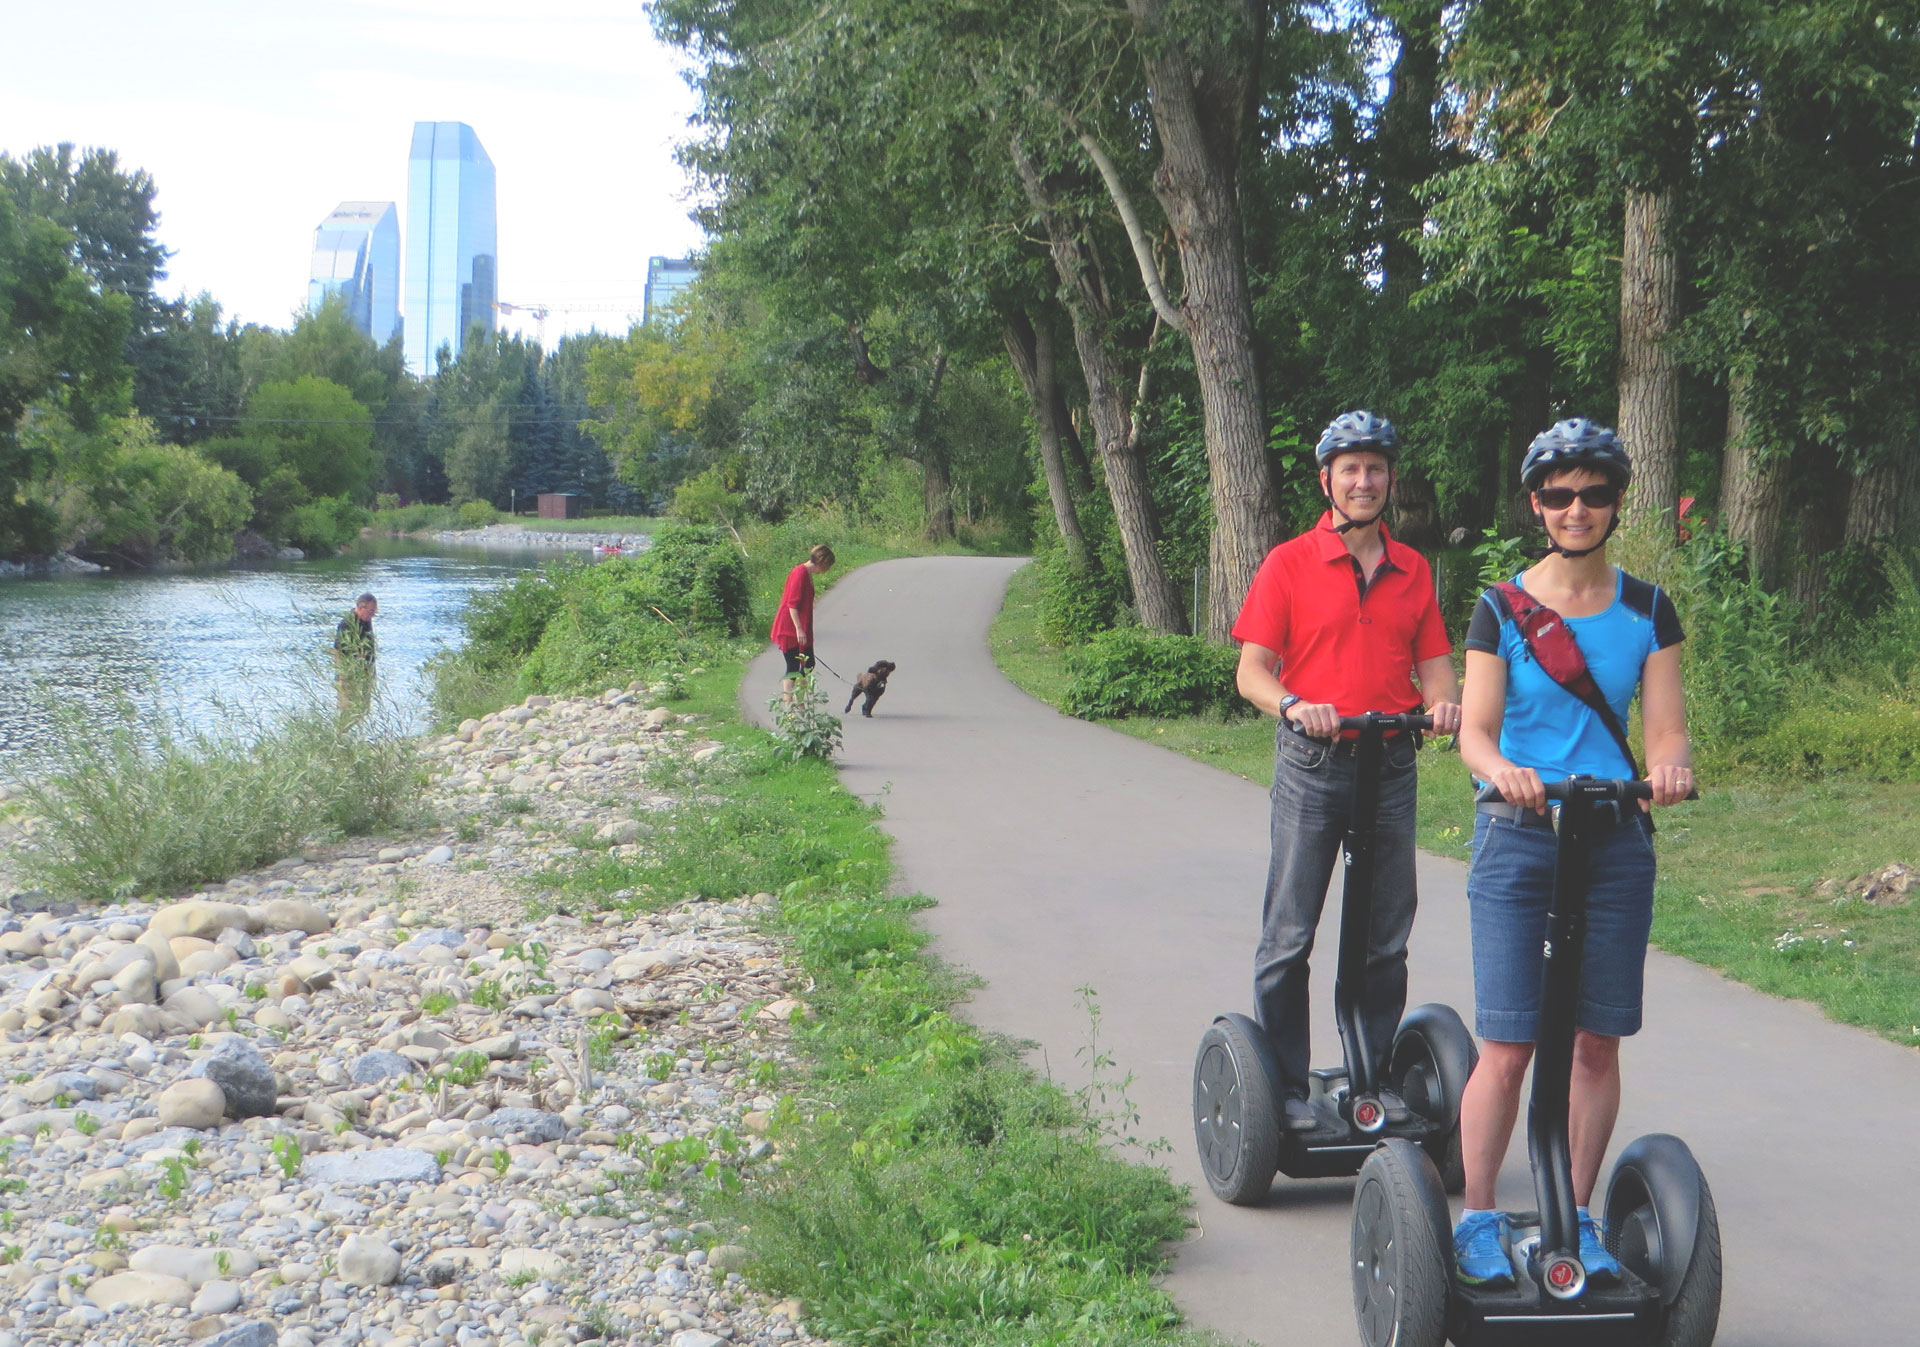 River Valley Adventure Segway Tours in Calgary.